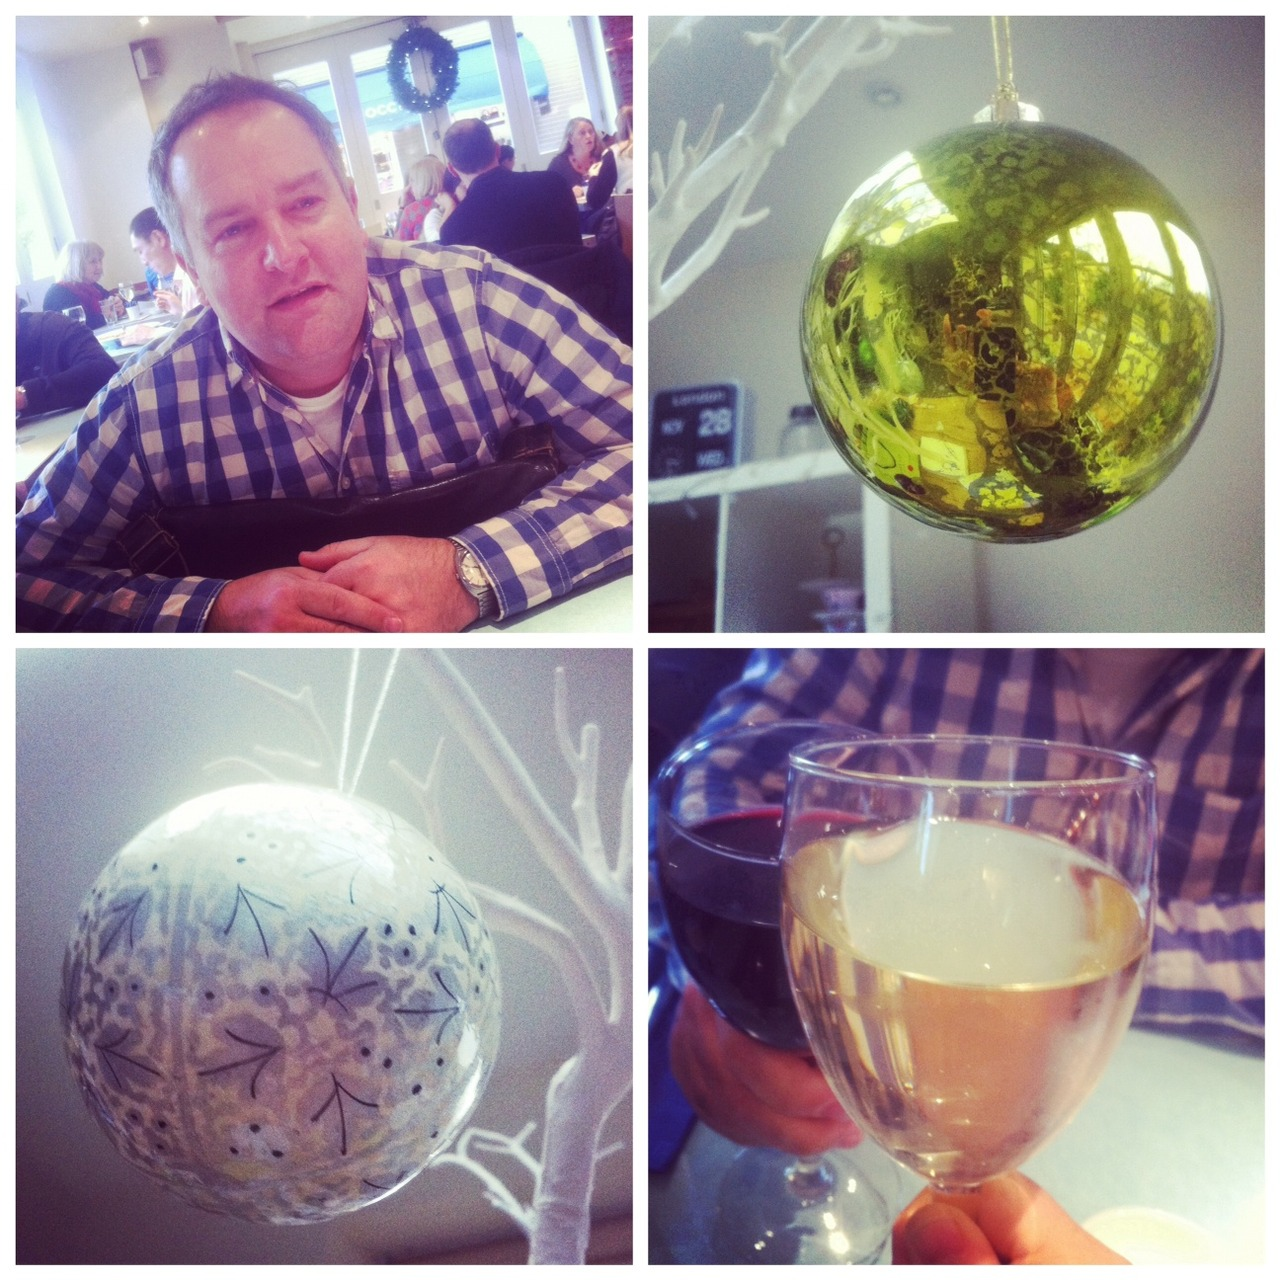 The big fella's birthday and baubles Today was the big fella's birthday so after my 7.30am meeting (yes really), I dashed back home to accompany him on his annual birthday day out. We went for a mooch around the shops he wanted to visit, had a lovely spot of lunch and a couple of very large glasses of wine and even managed to do a bit of bauble shopping on the way home. The boys and I sang happy birthday after school and we all had chocolate cake for tea. Brilliant. Back to the crazy work schedule tomorrow though *sigh*…